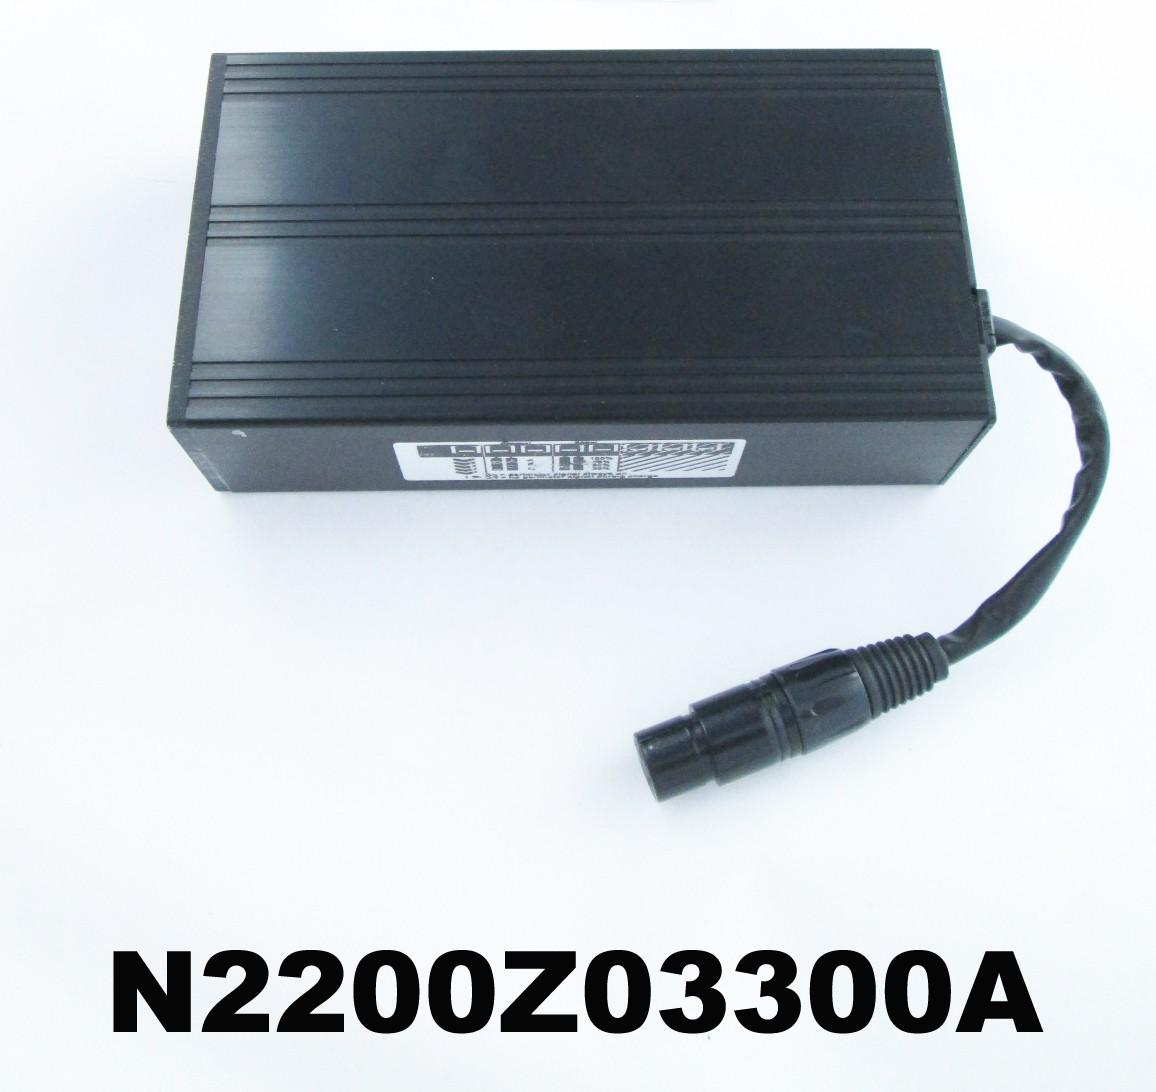 Wiper One, Runner Classic, X Sinusoidal Signaltransmitter